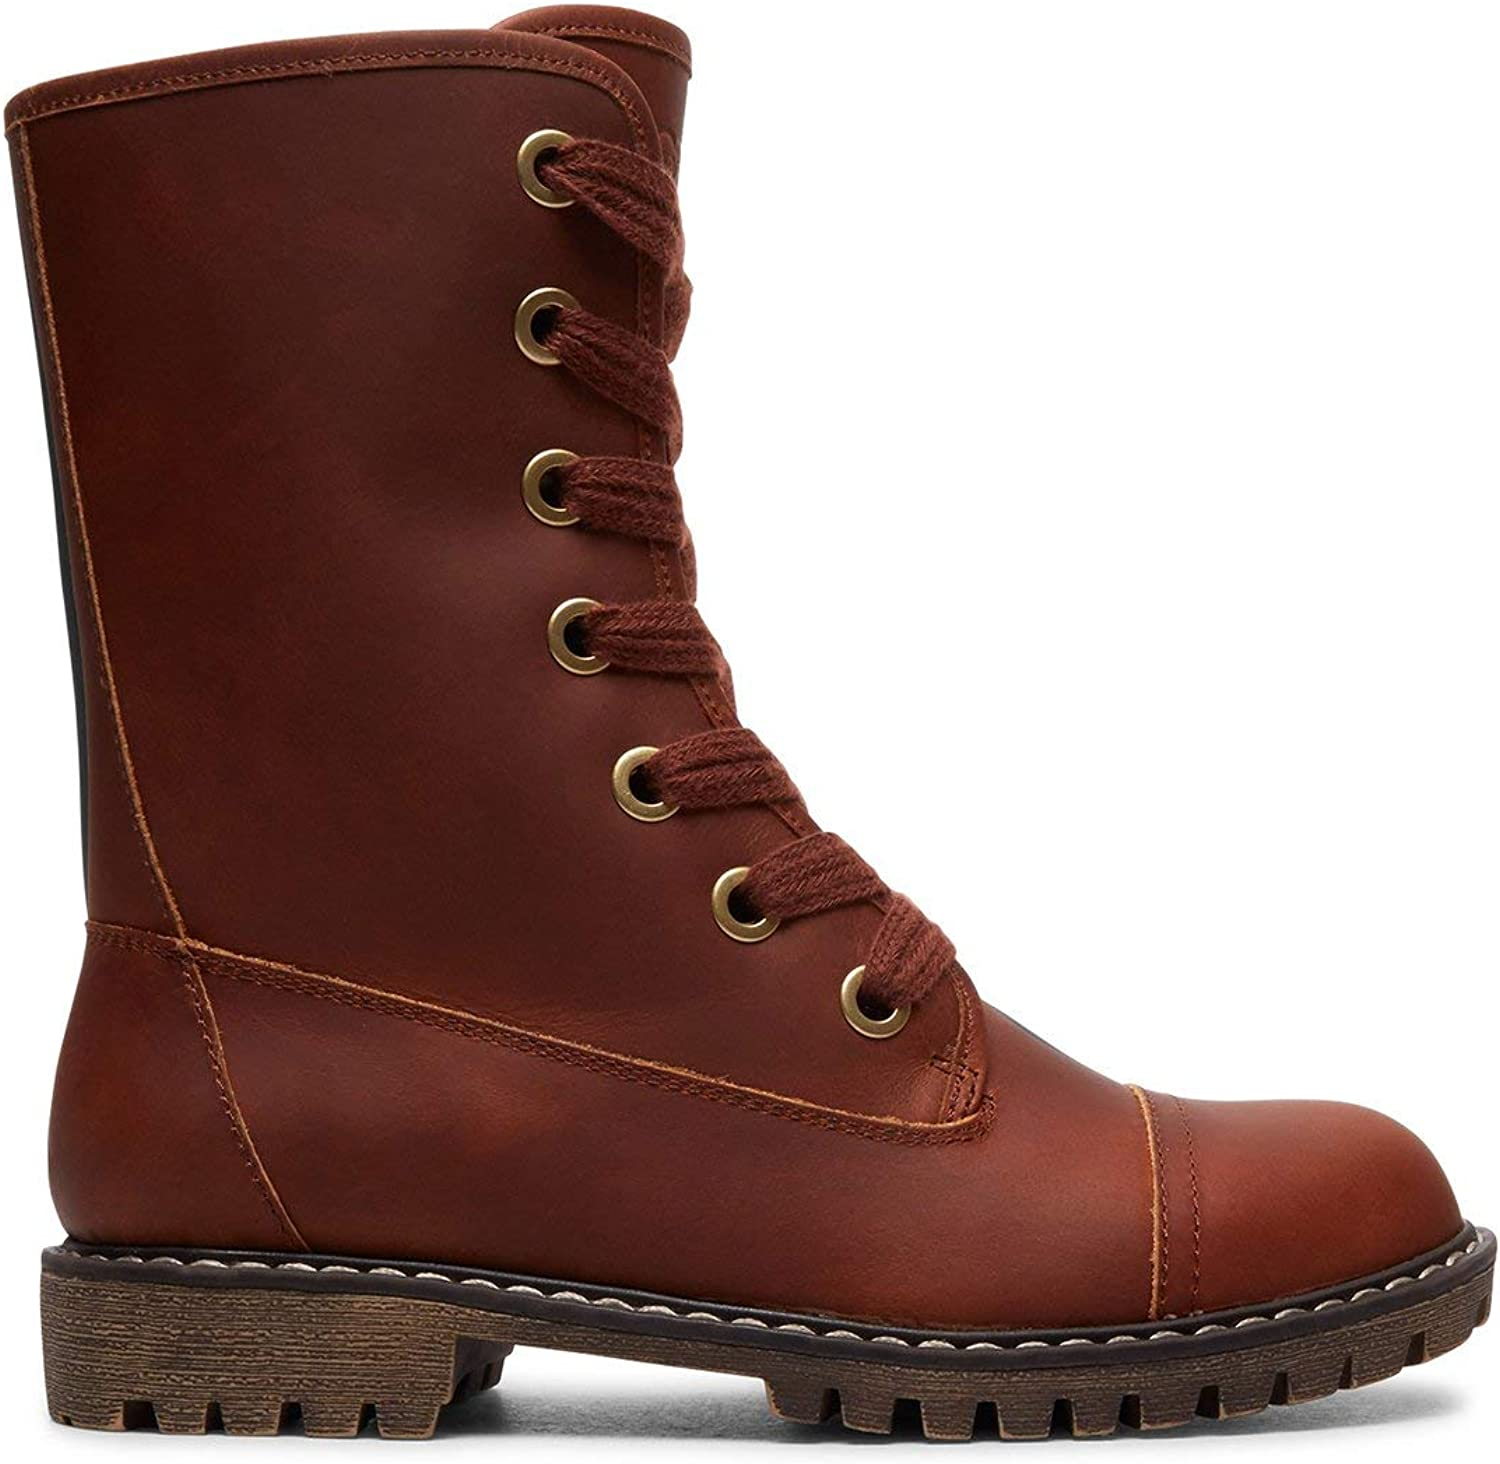 Roxy Damen Vance - Lace-up Leather Boots for Women Schlupfstiefel Chocolate